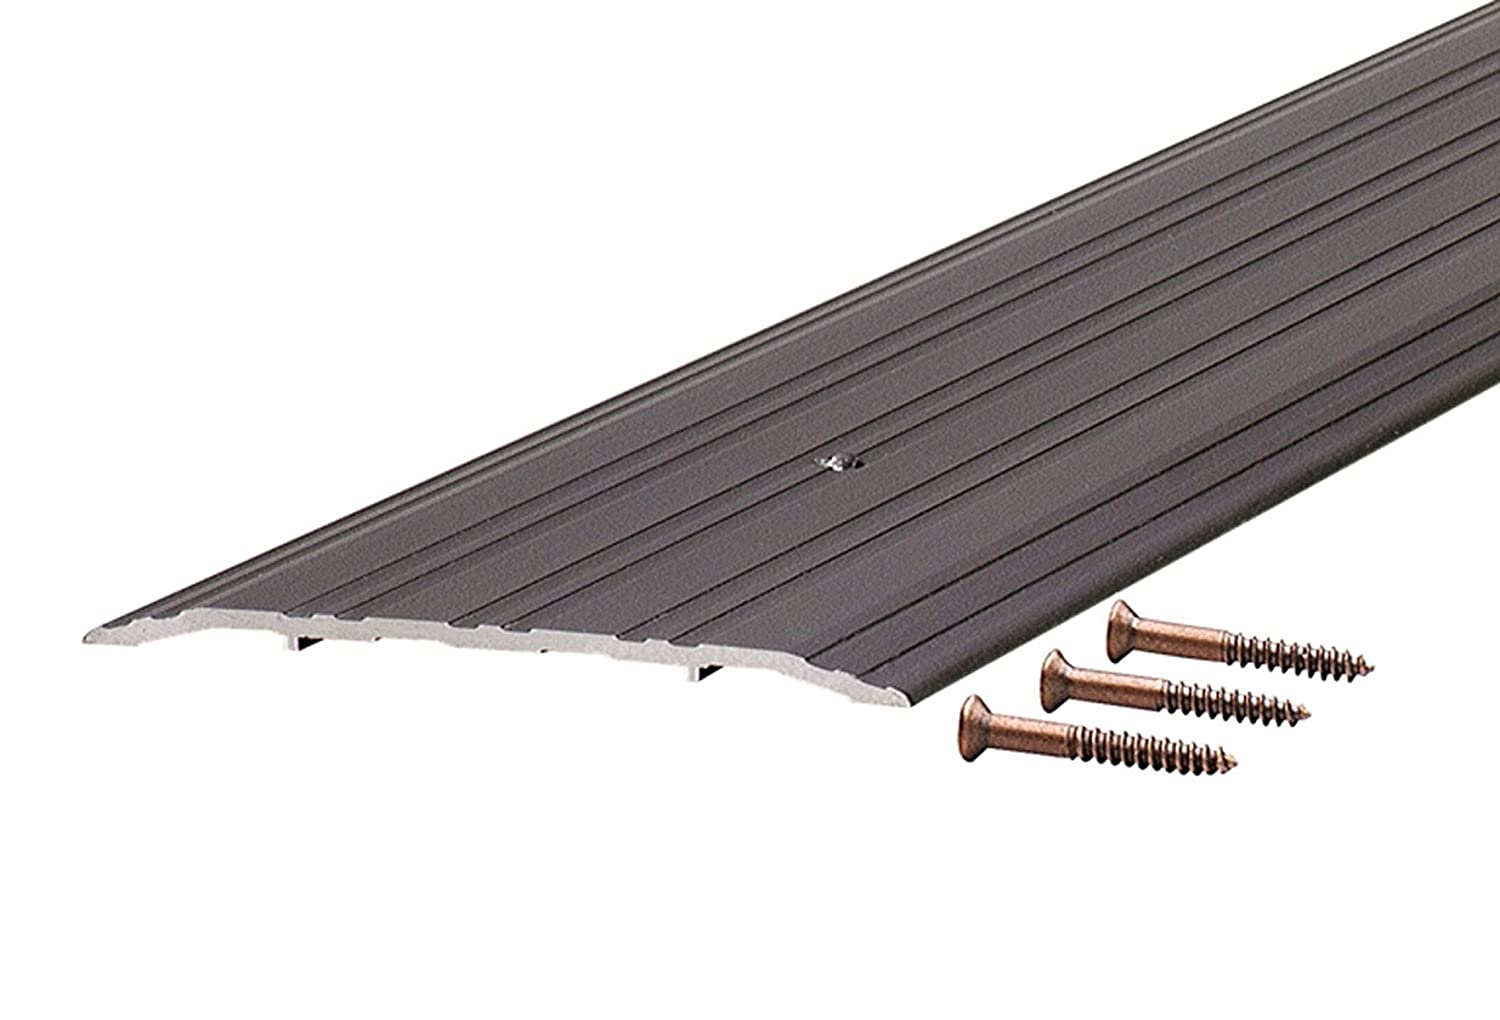 72-Inch TH042 Fluted Saddle Bronze M-D Building Products 69811 1//4-Inch by 5-Inch